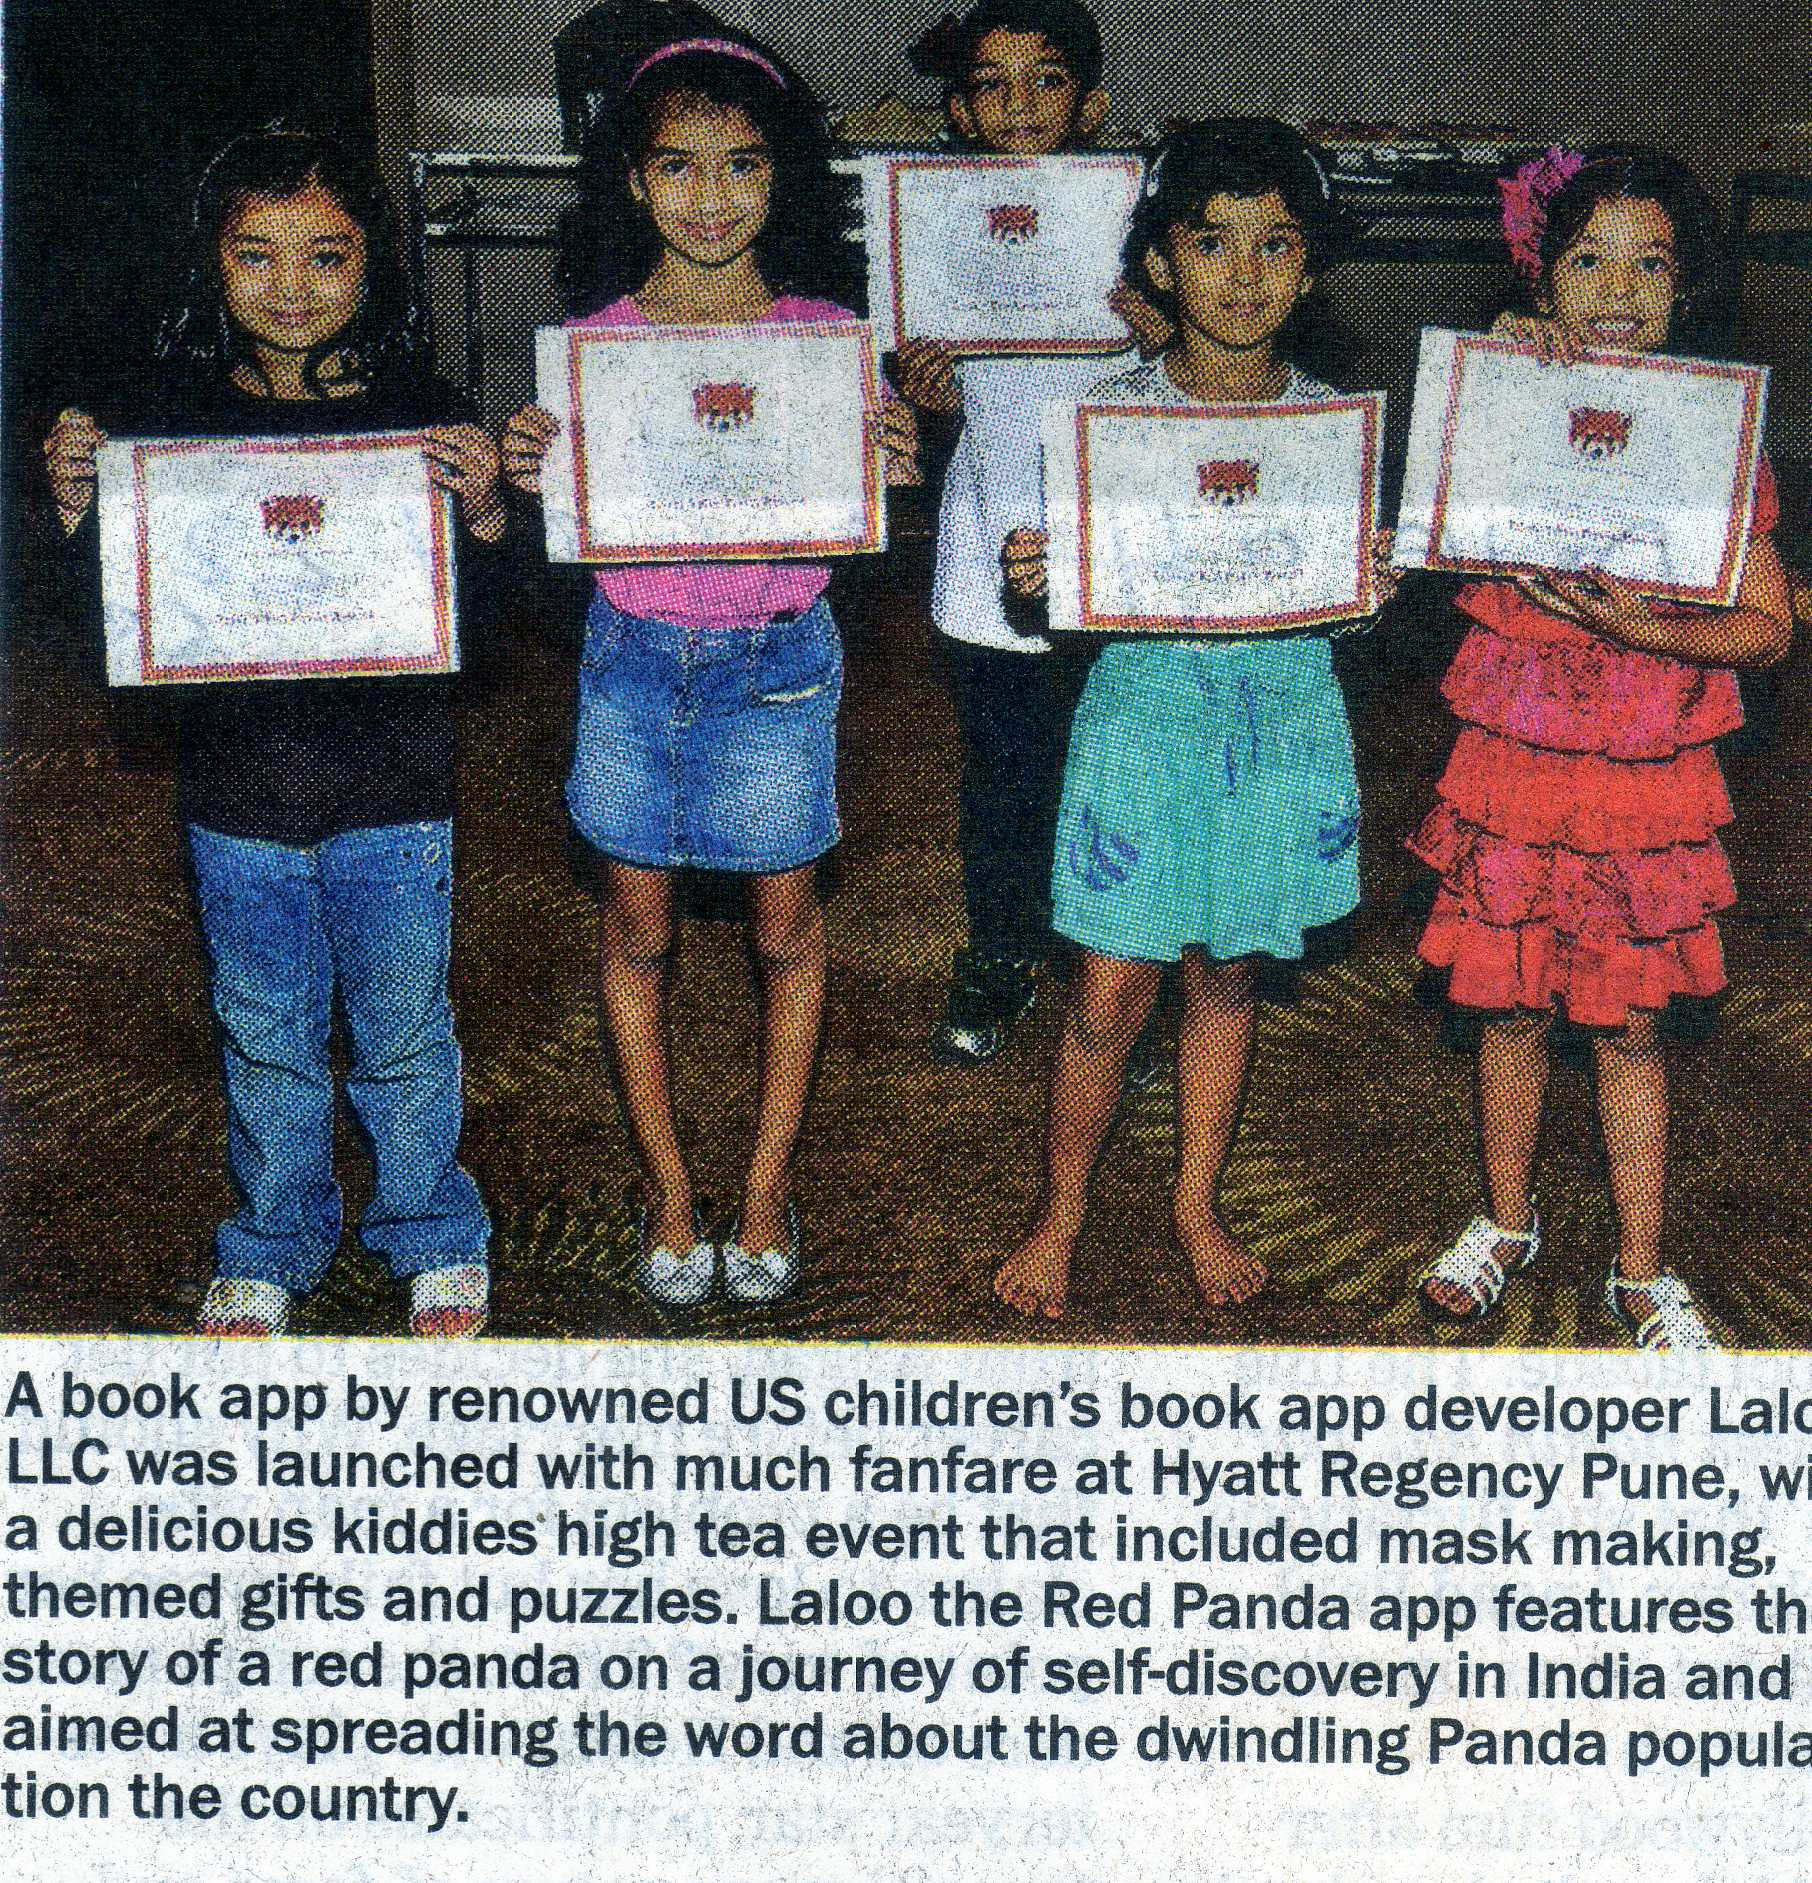 DNA newspaper in Mumbai covered Laloo's launch party!